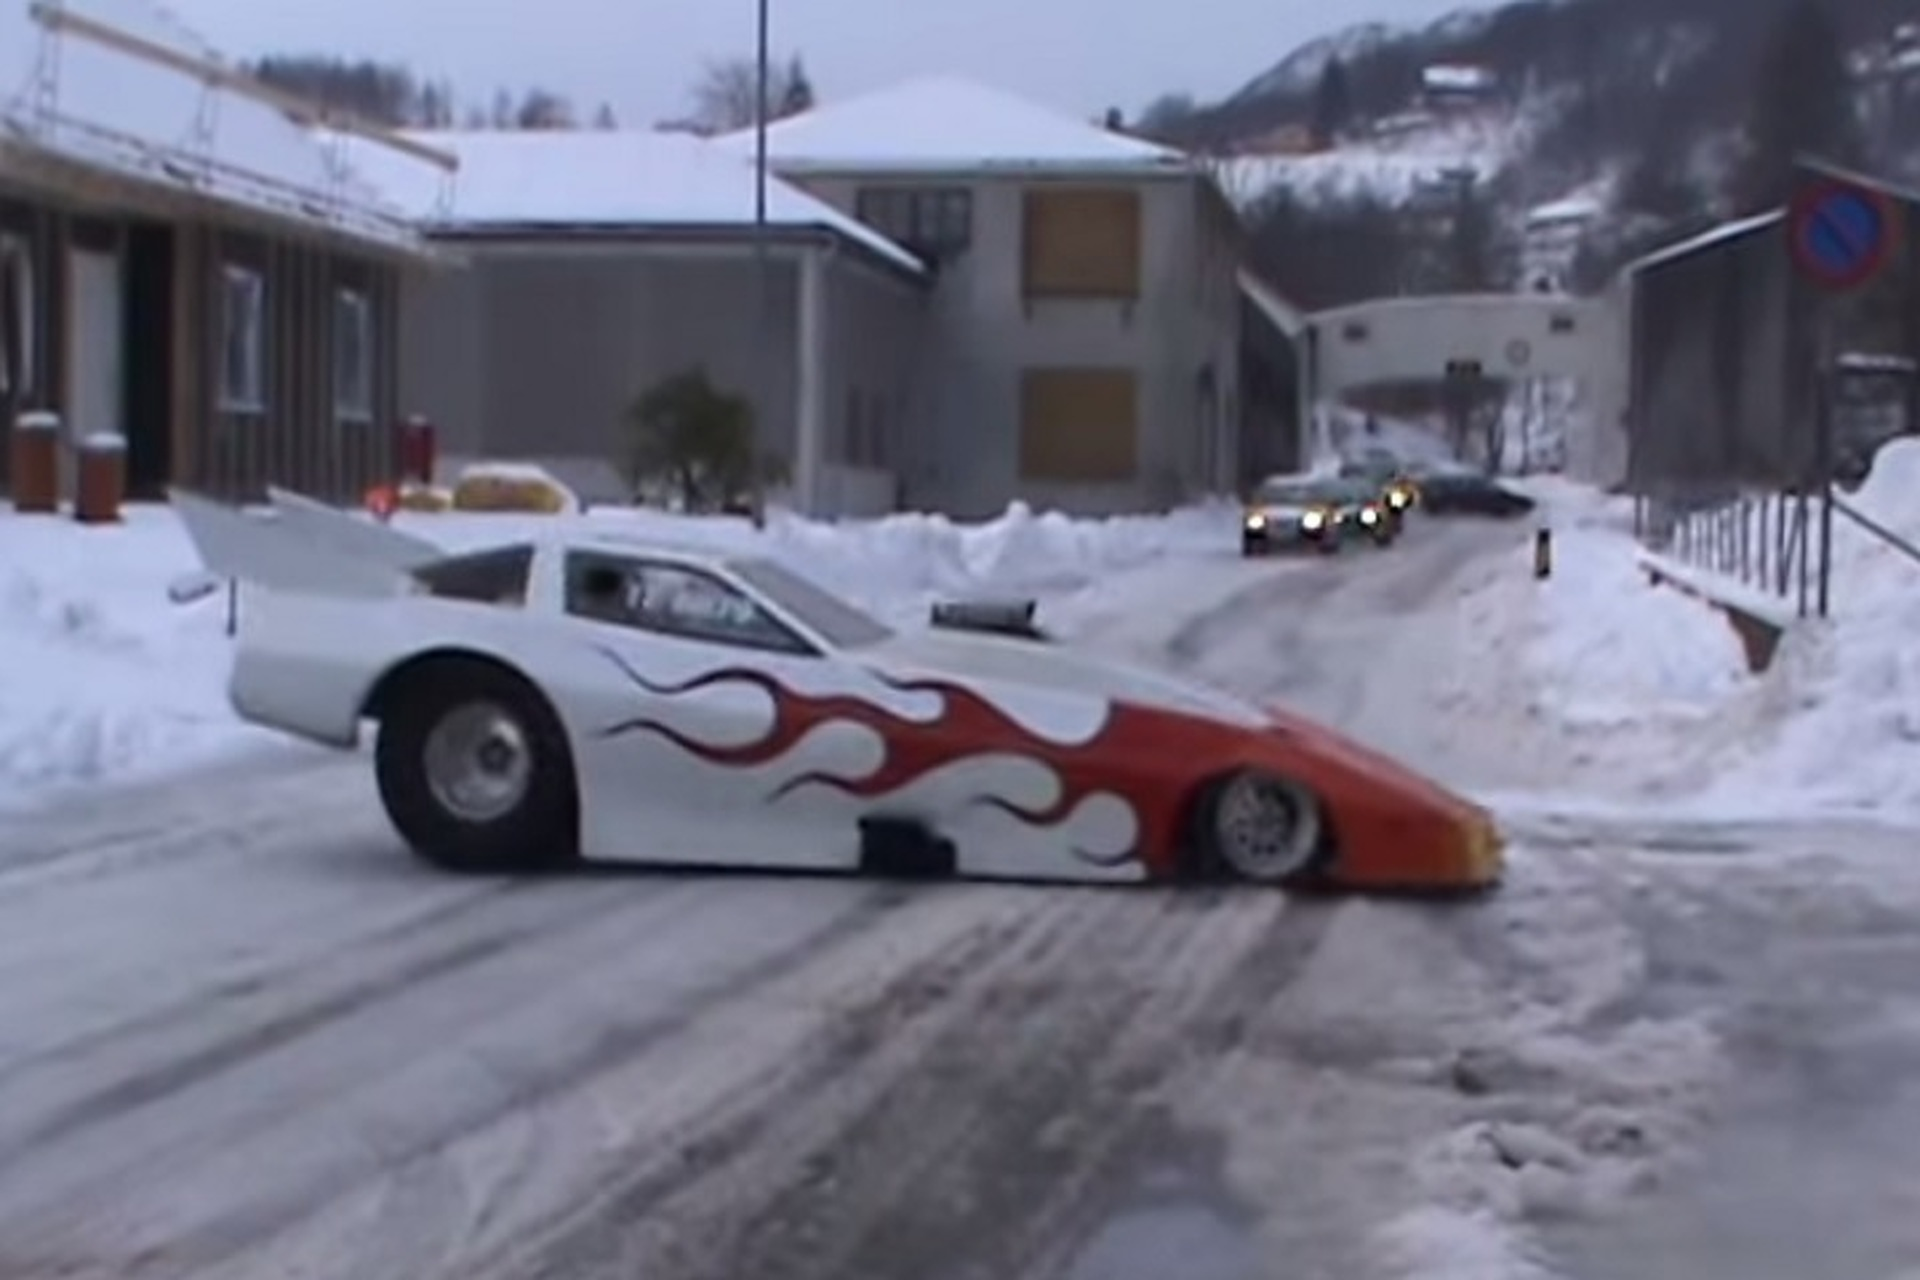 See Why Funny Cars And Snow Do Not Go Together